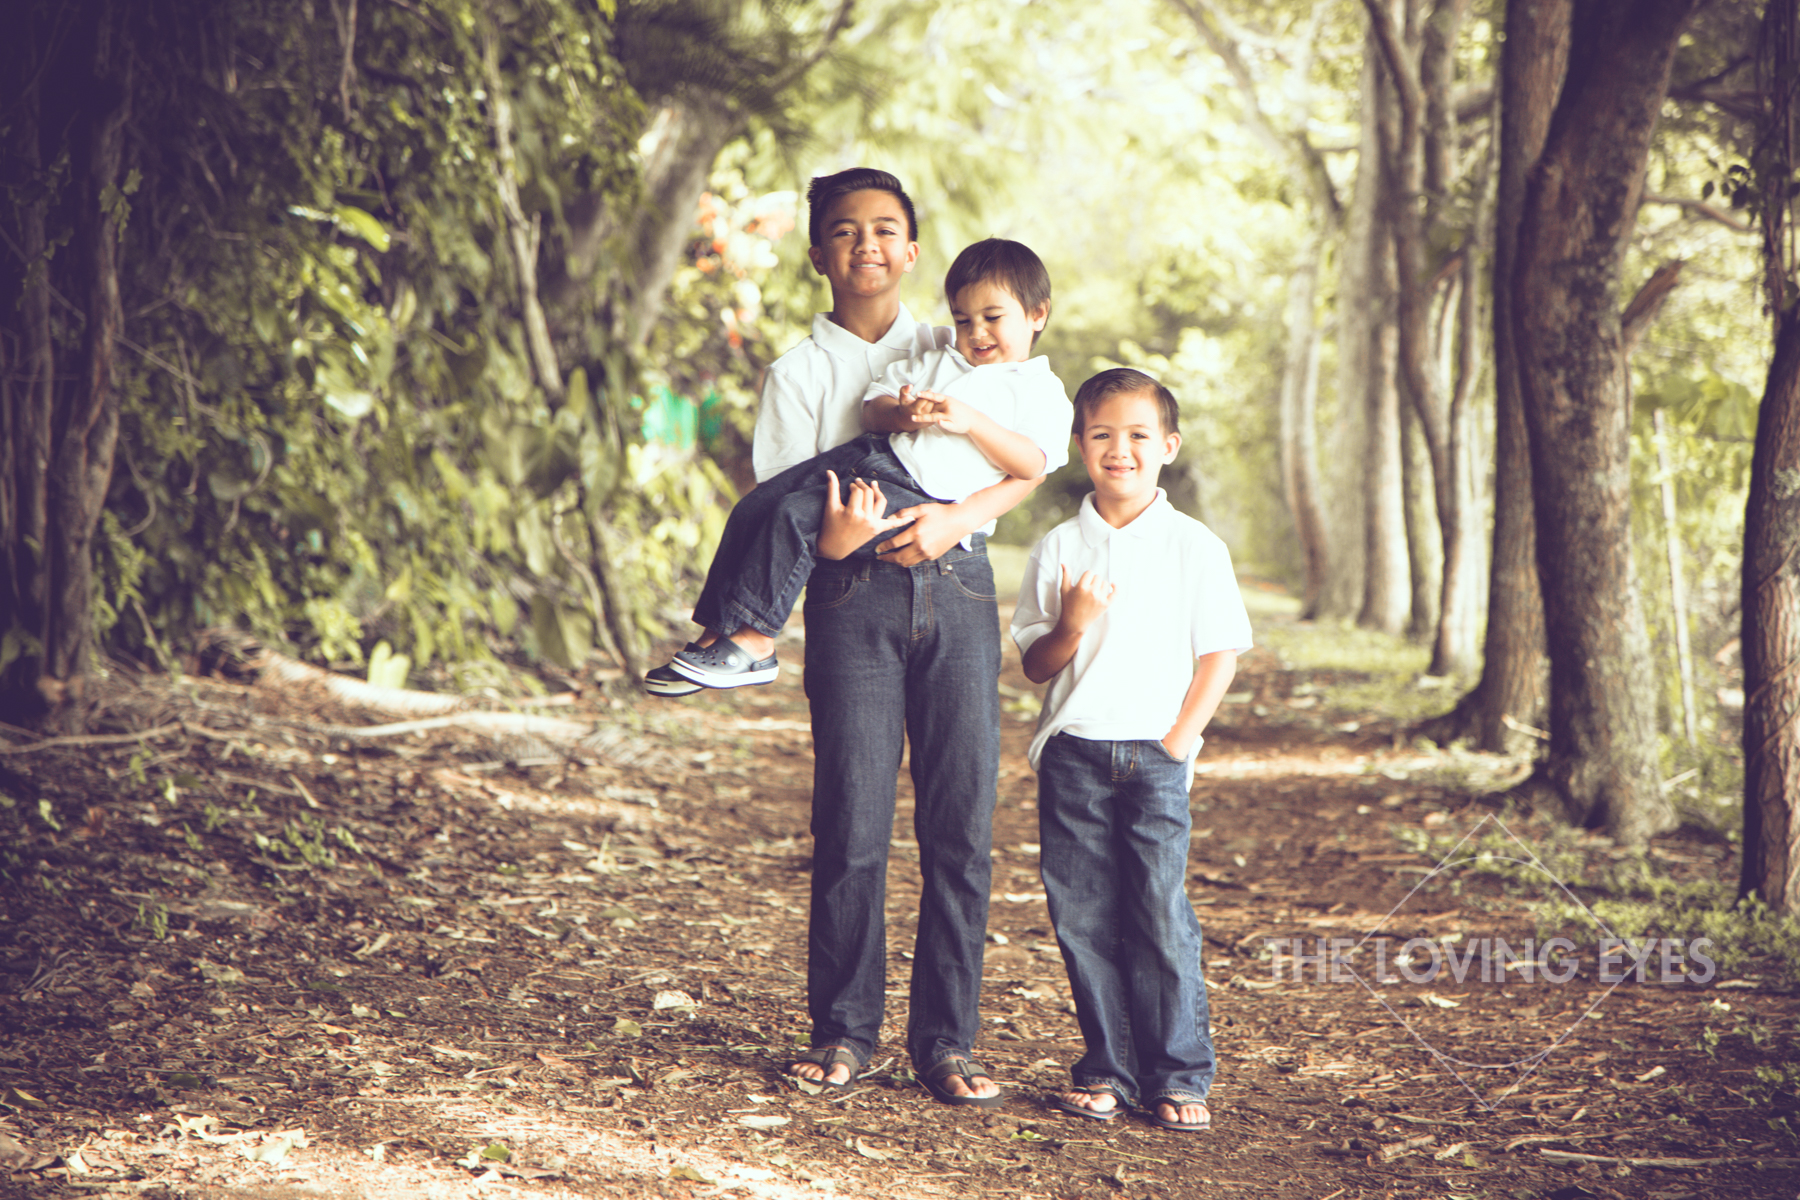 Sam was very easy going and made it a point to know each of my sons names, I think that made them feel more comfortable from the beginning of our photo shoot to the end. He made it feel very easy, when I know in fact three young boys on a photo shoot out in nature is not the easiest. -Brianne, Lihuʻe HI